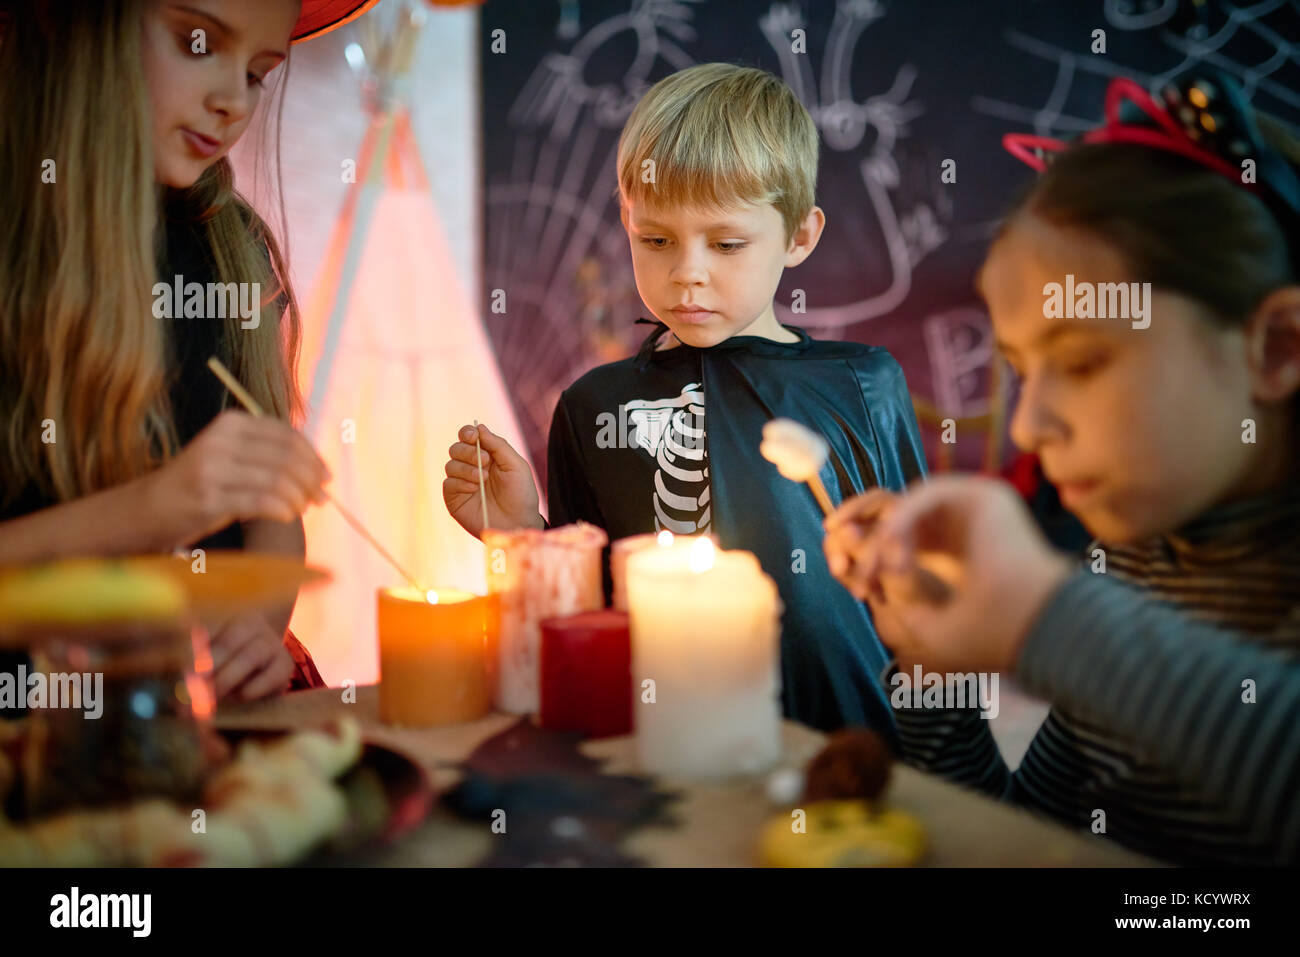 Three little friends wearing Halloween costumes gathered together at cozy living room decorated for holiday and - Stock Image